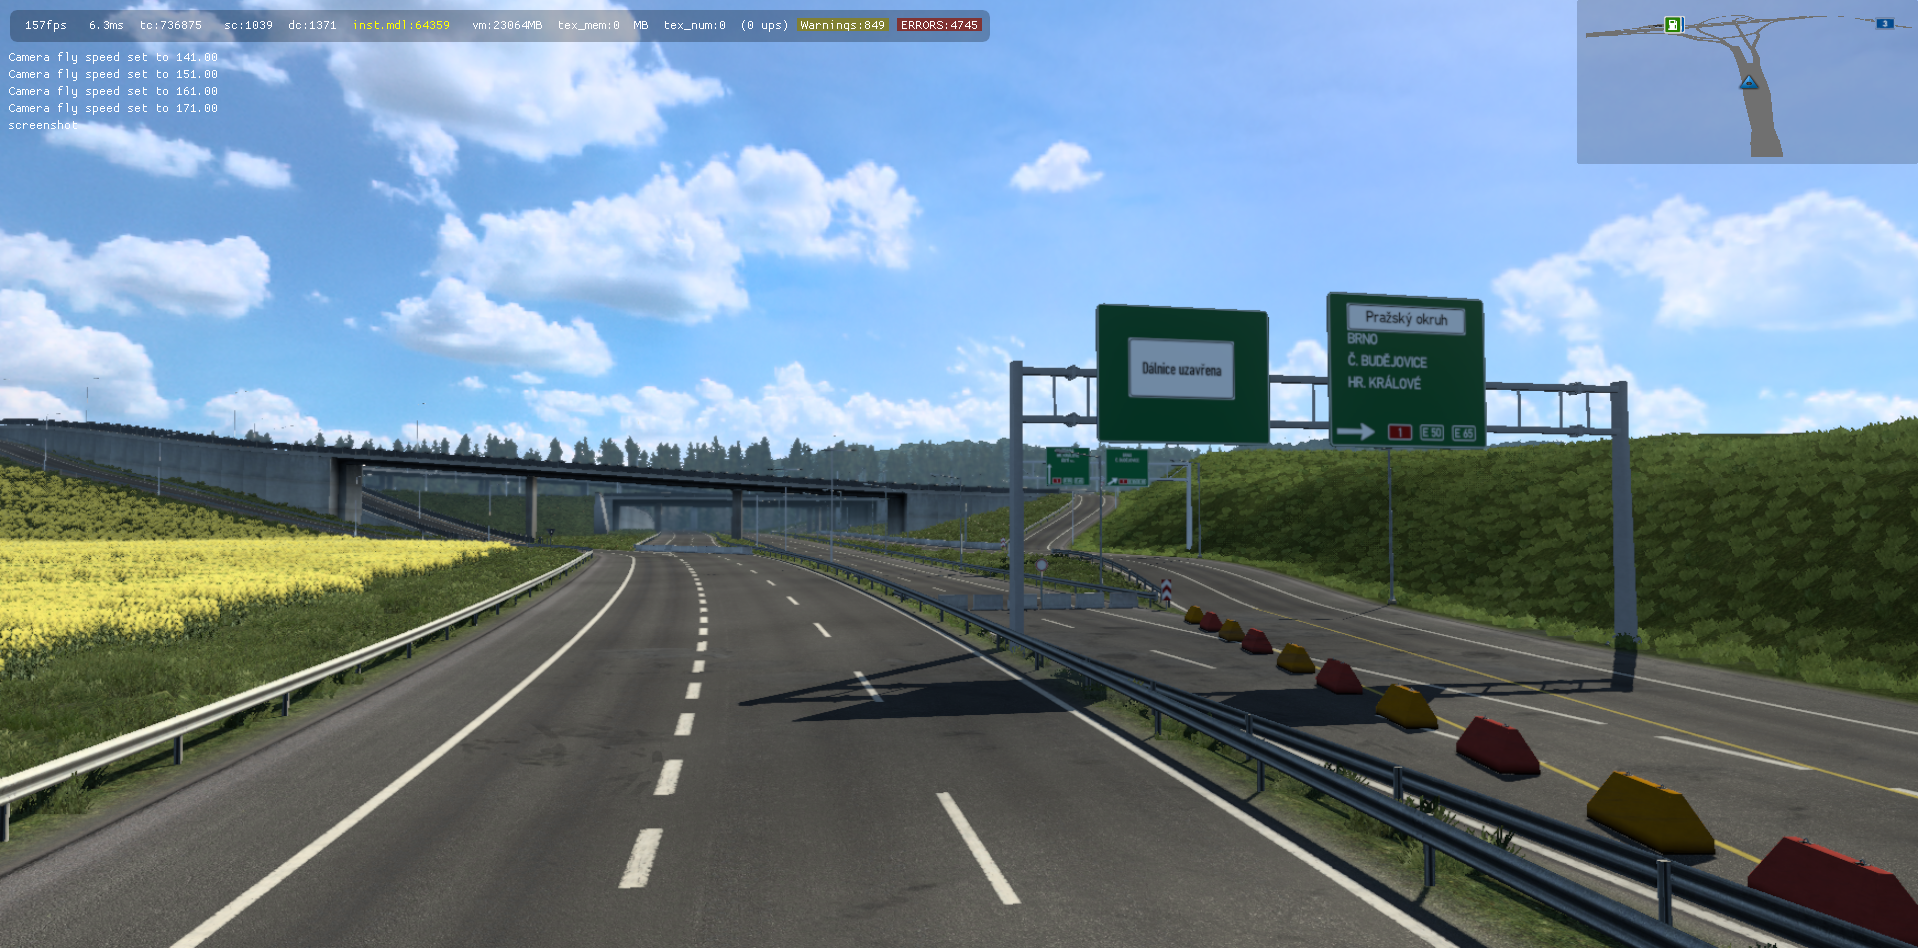 ets2_20210622_212732_00.png